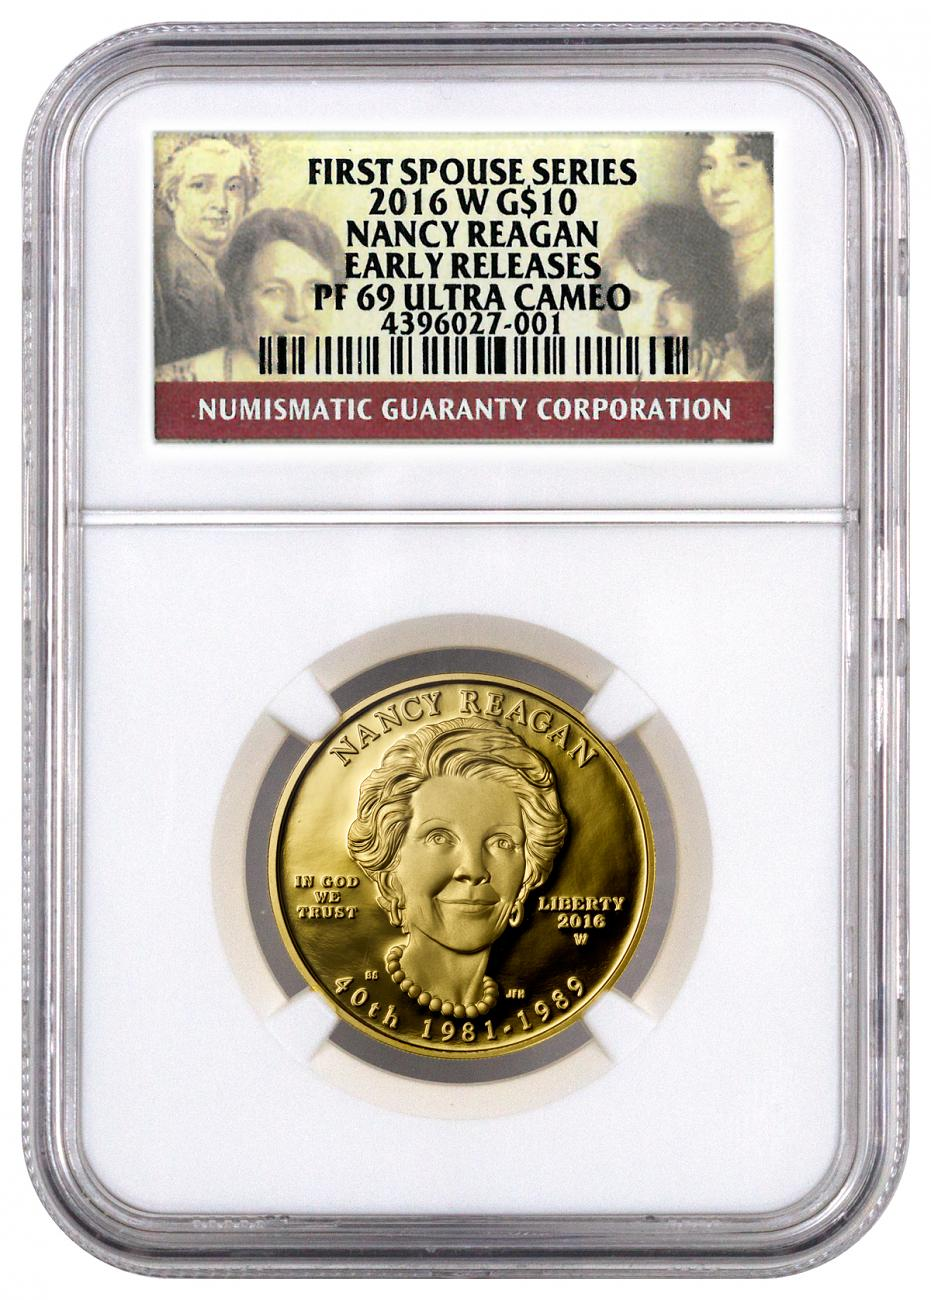 2016-W $10 1/2 oz. Proof Gold First Spouse - Nancy Reagan - NGC PF69 UC Early Releases